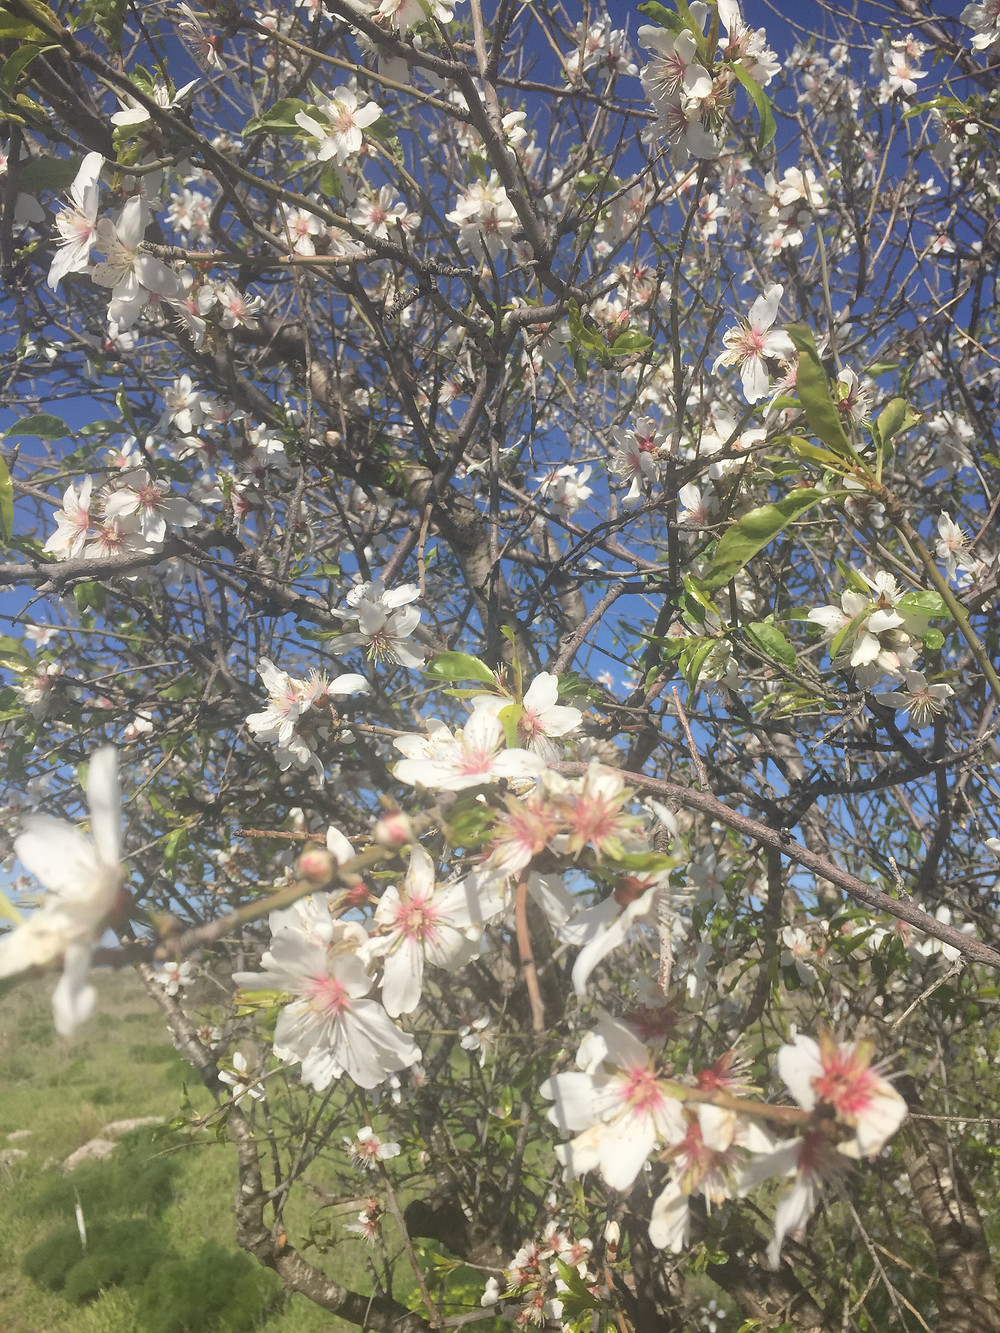 Almond blossoms in Israel